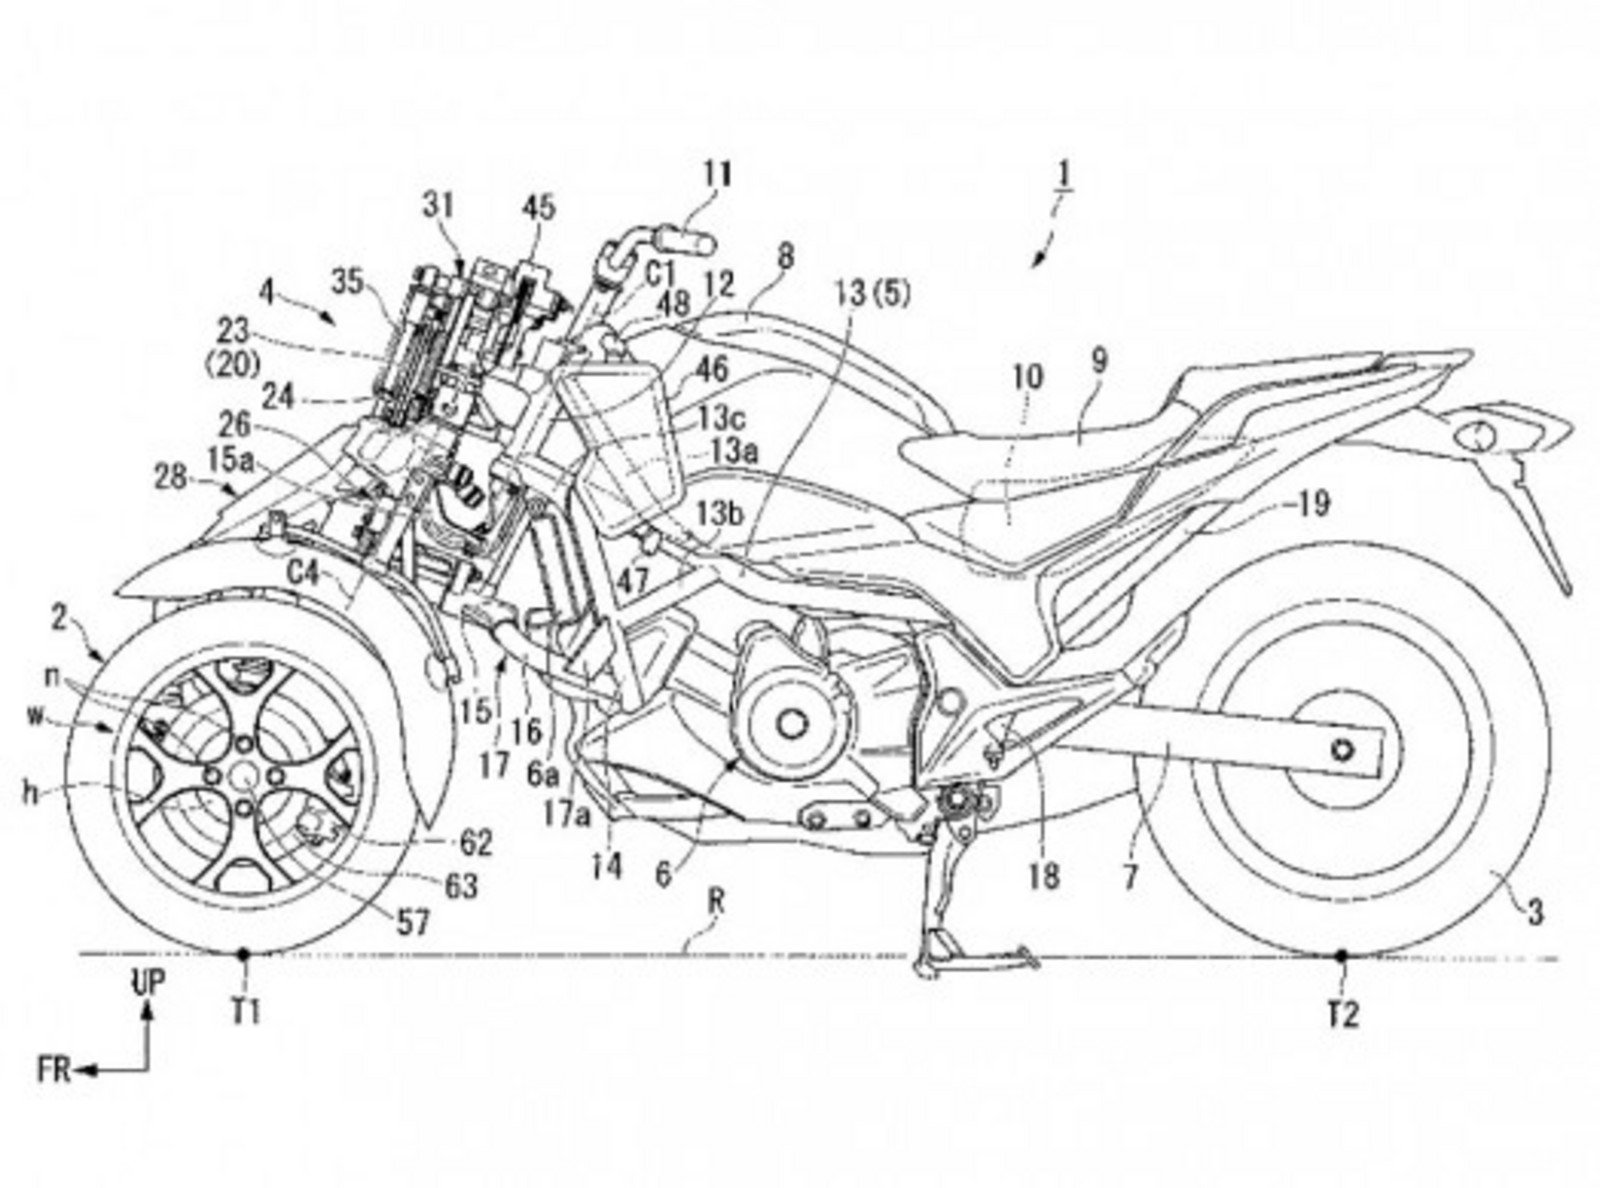 Honda Eyeing Possibility Of Developing Leaning Three